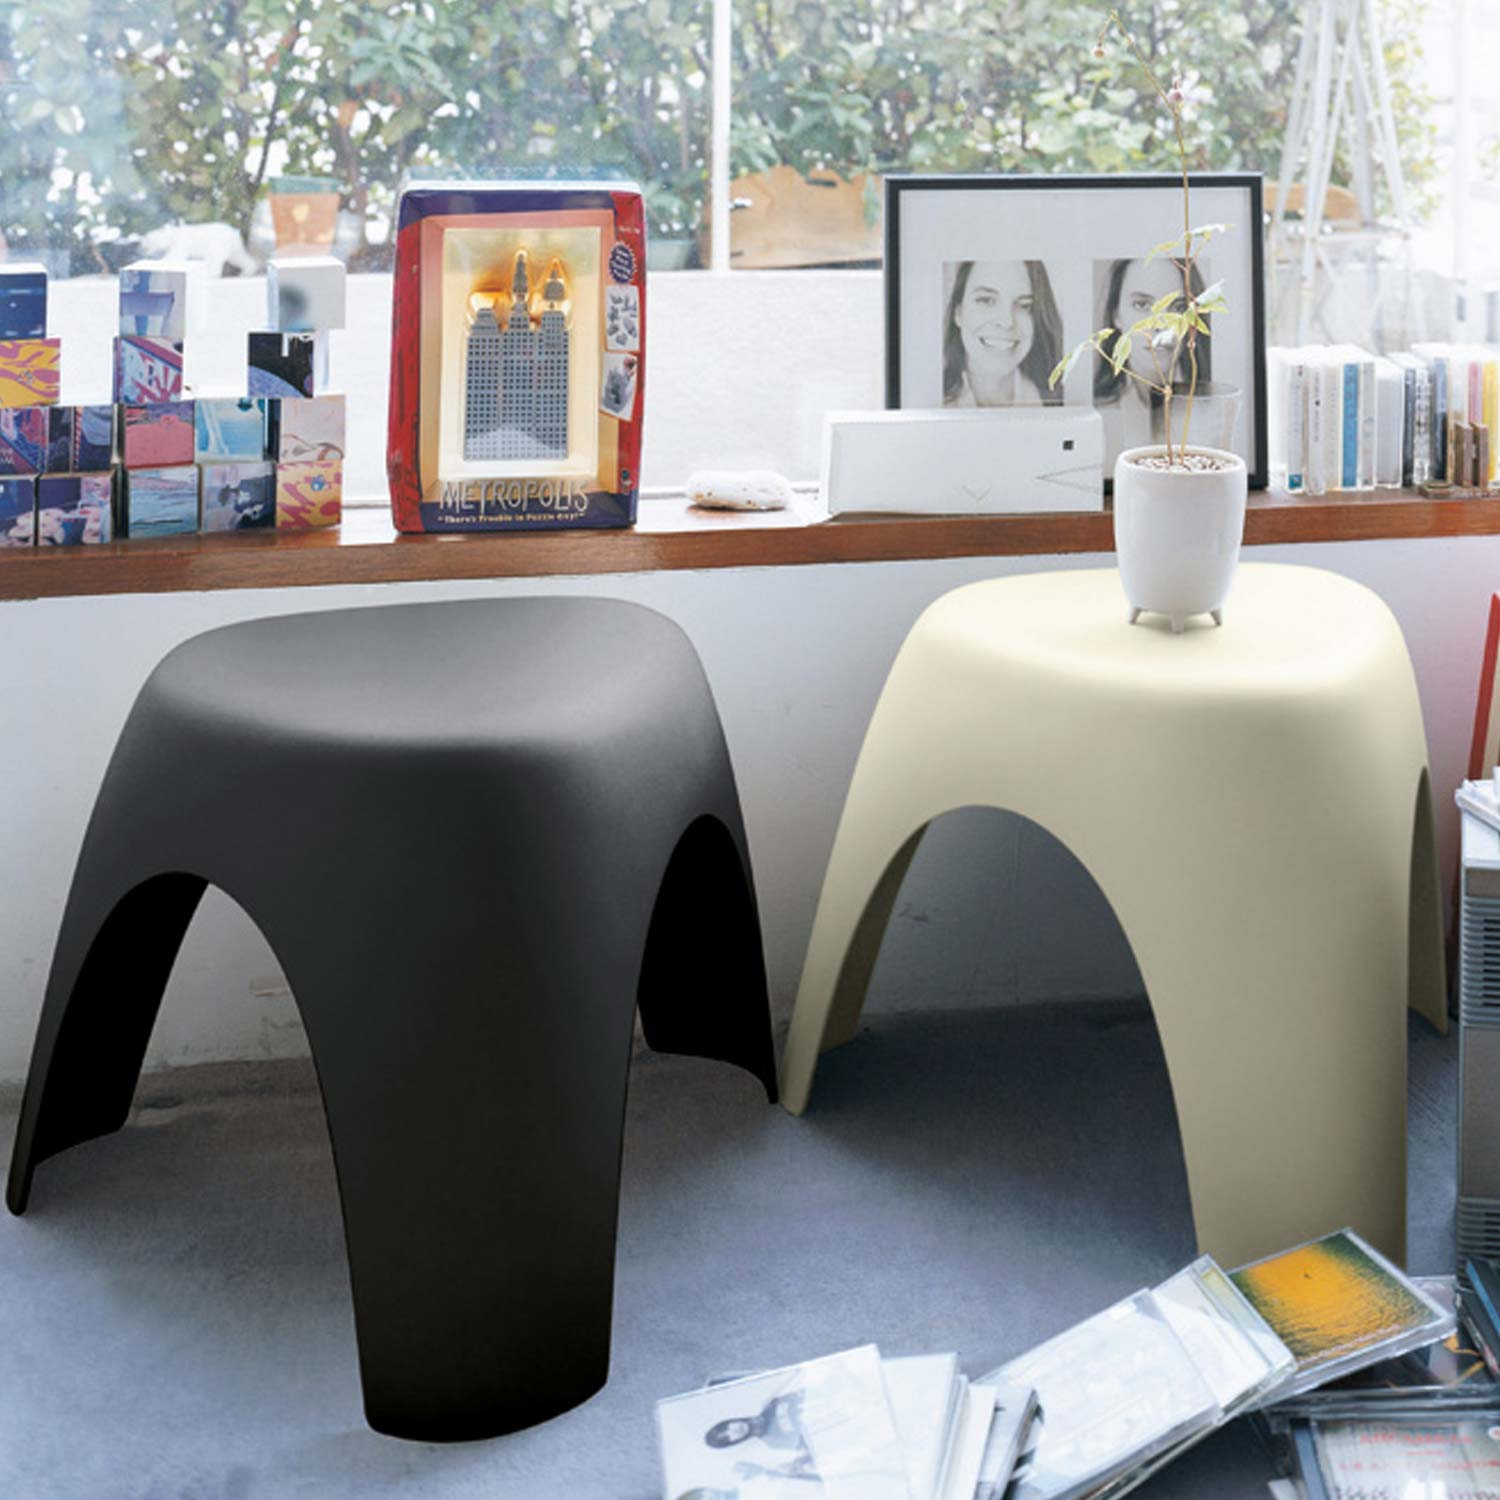 elephant stool is for indoors balconies and outdoors - elephant stool